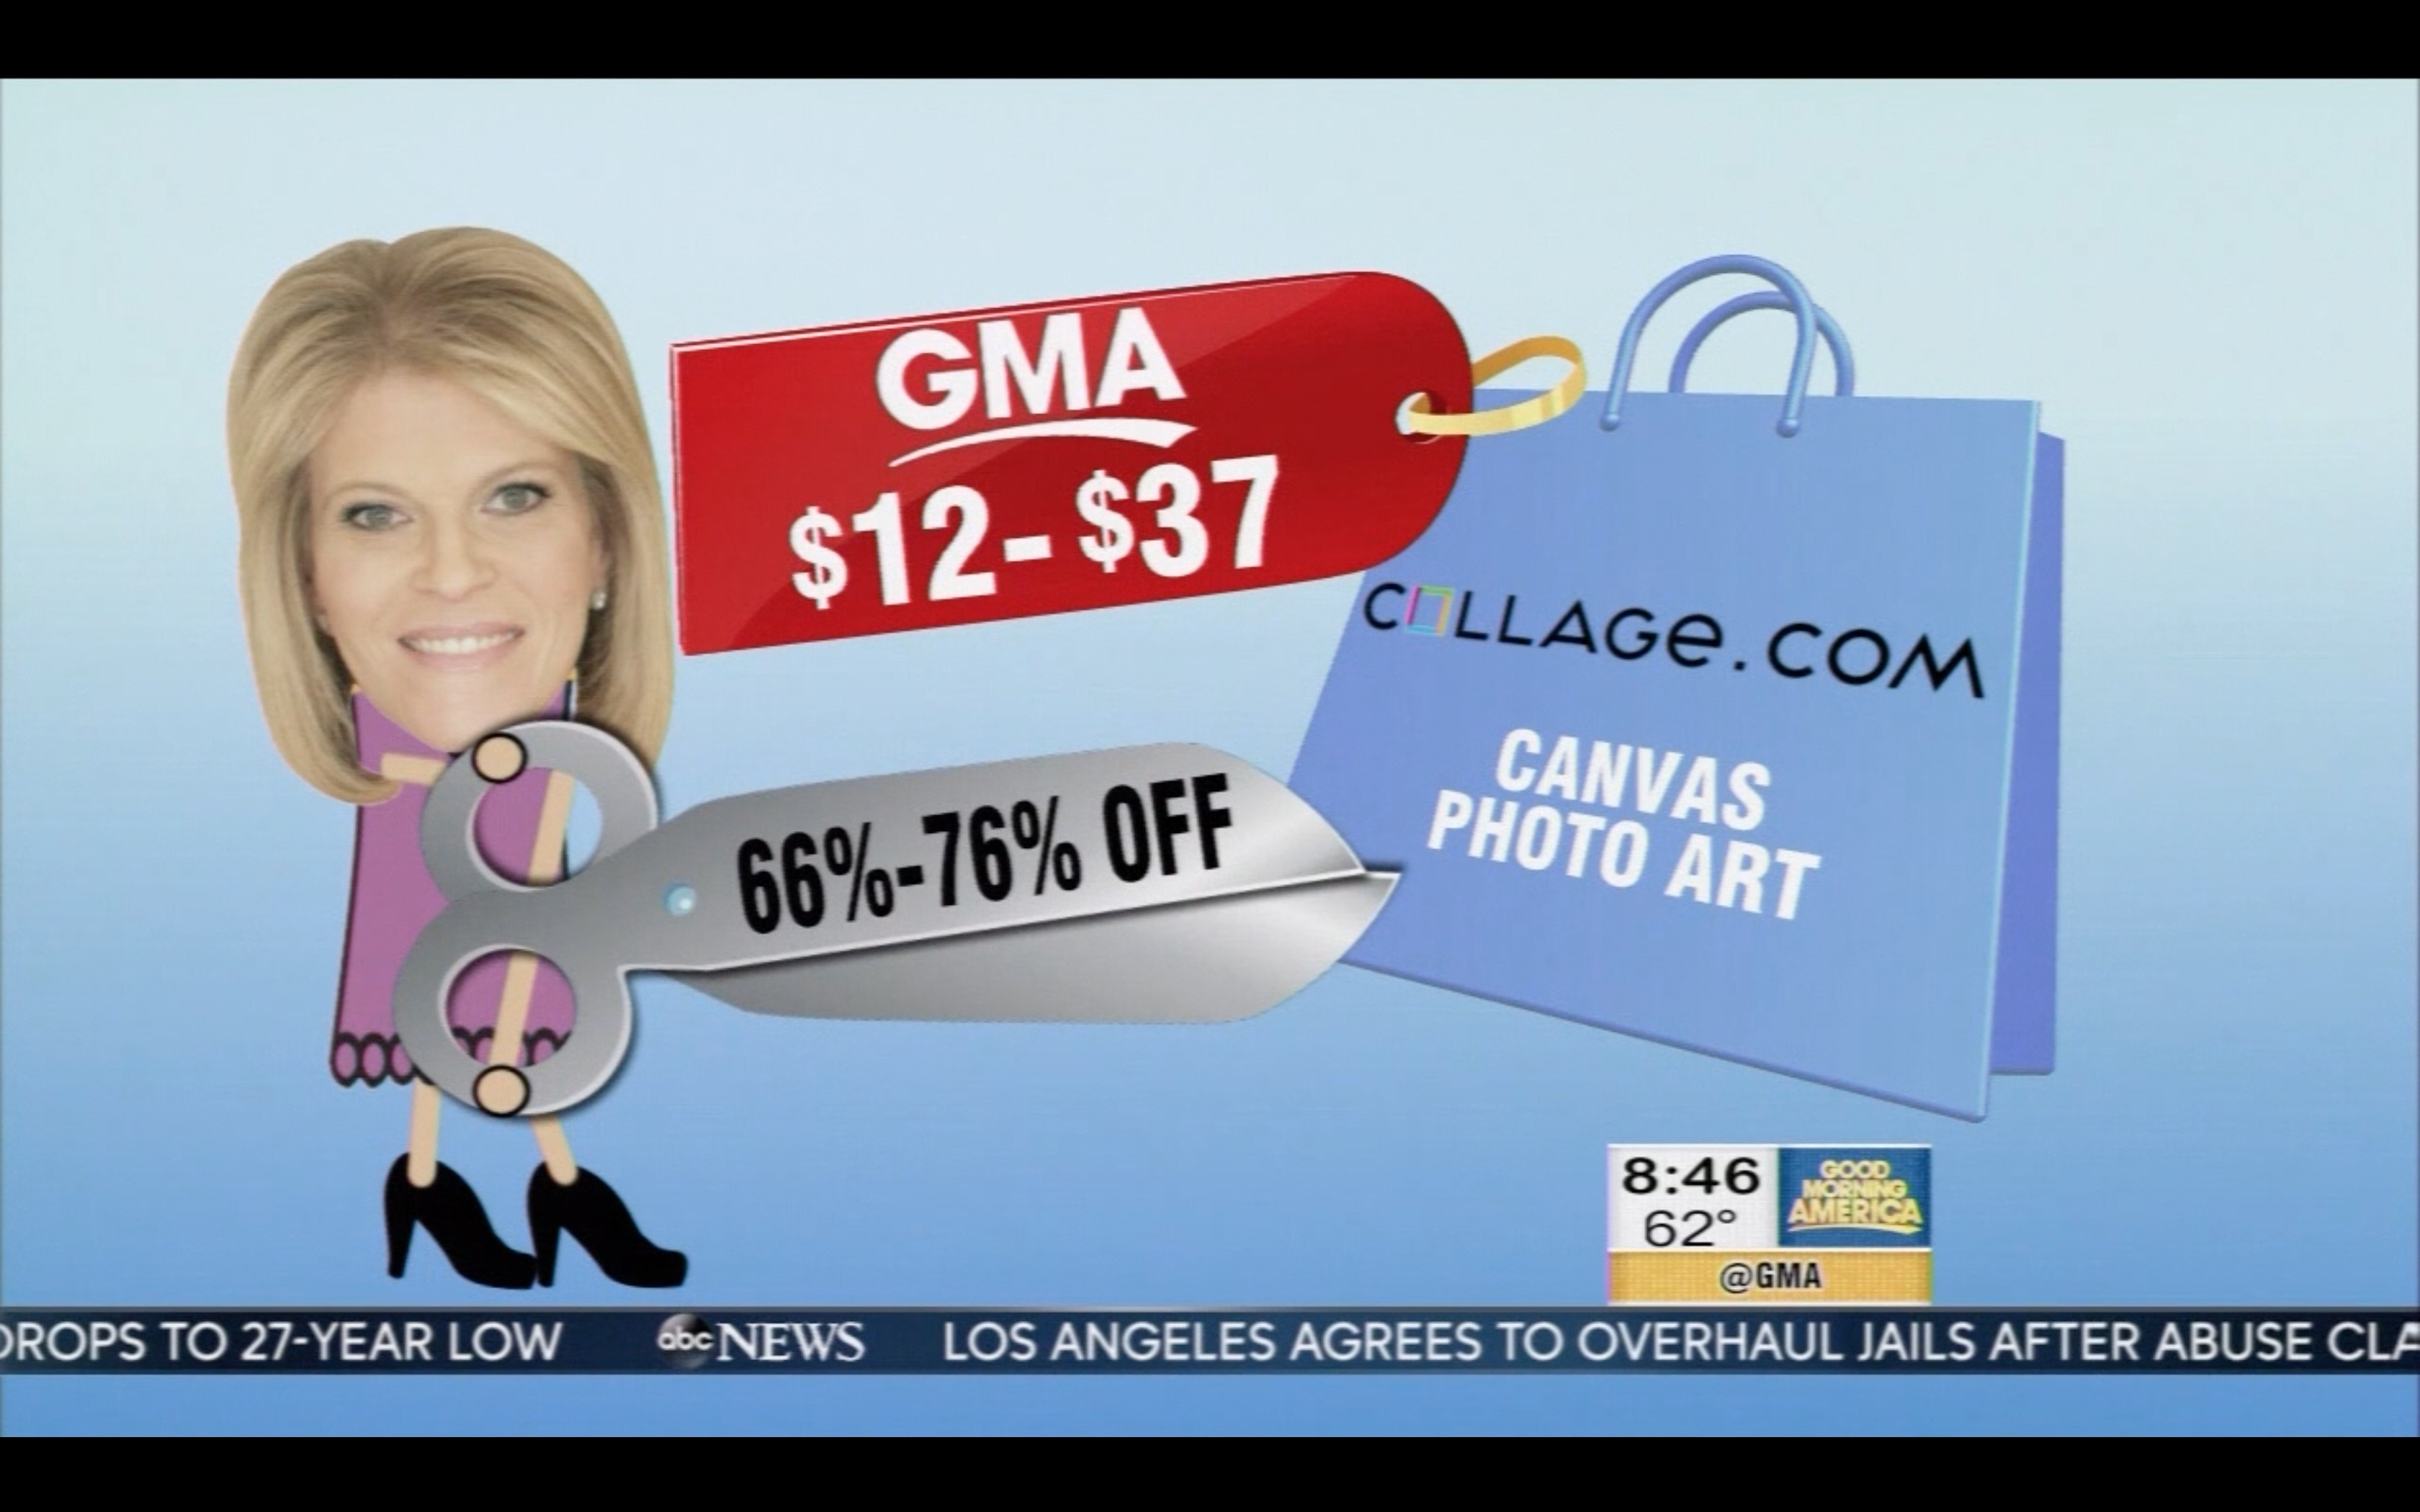 Collage.com on Good Morning America with up to 76%-off gallery wrap canvases